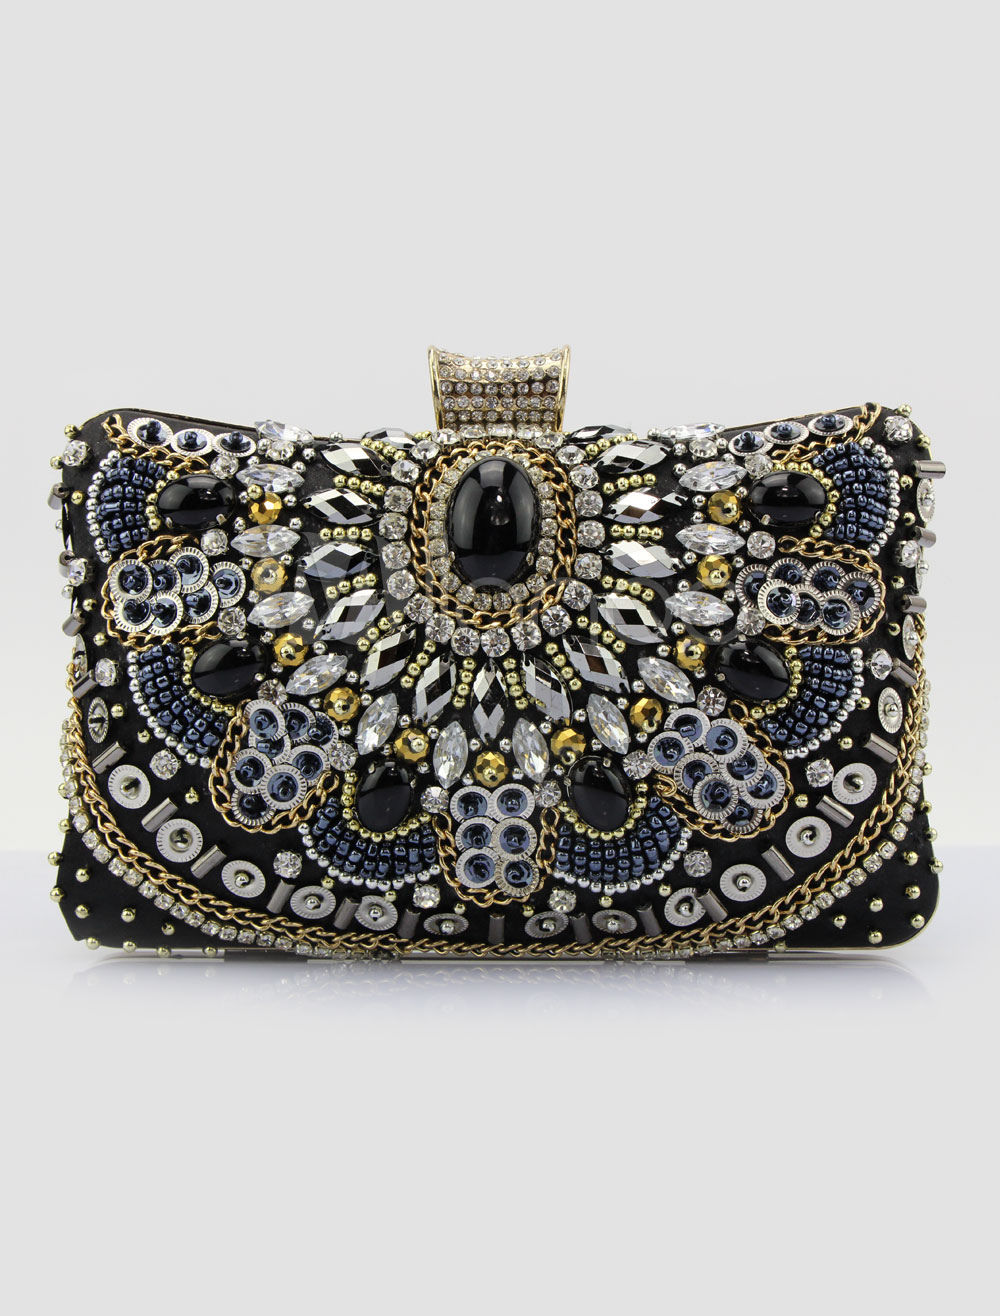 Black Clutch Bags Wedding Studded Evening Handbags